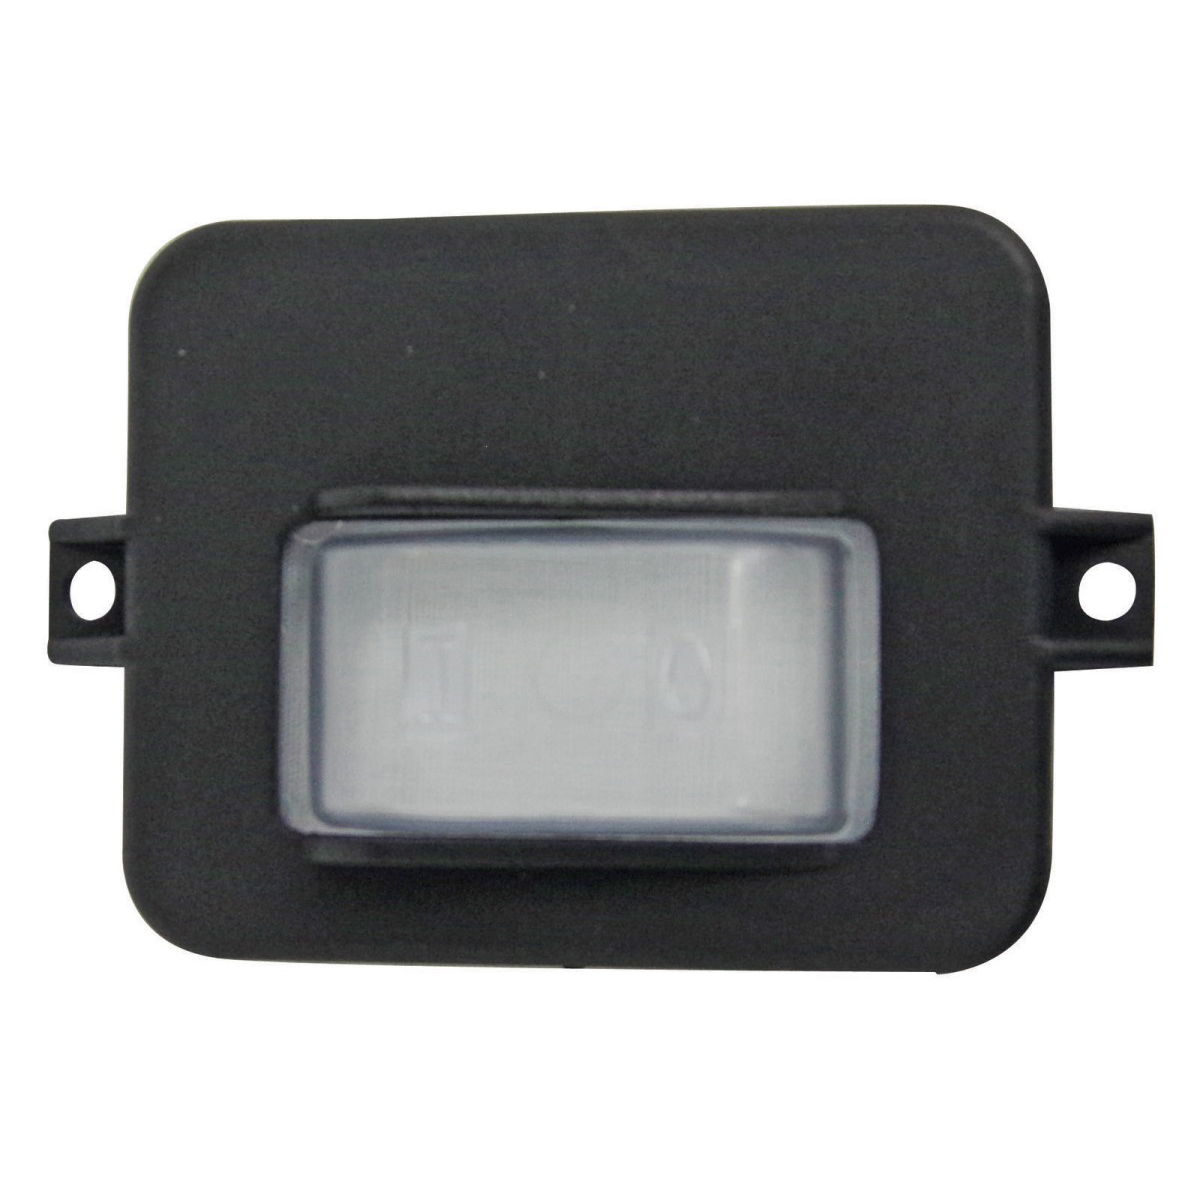 43453  Switch cover andamp Frame